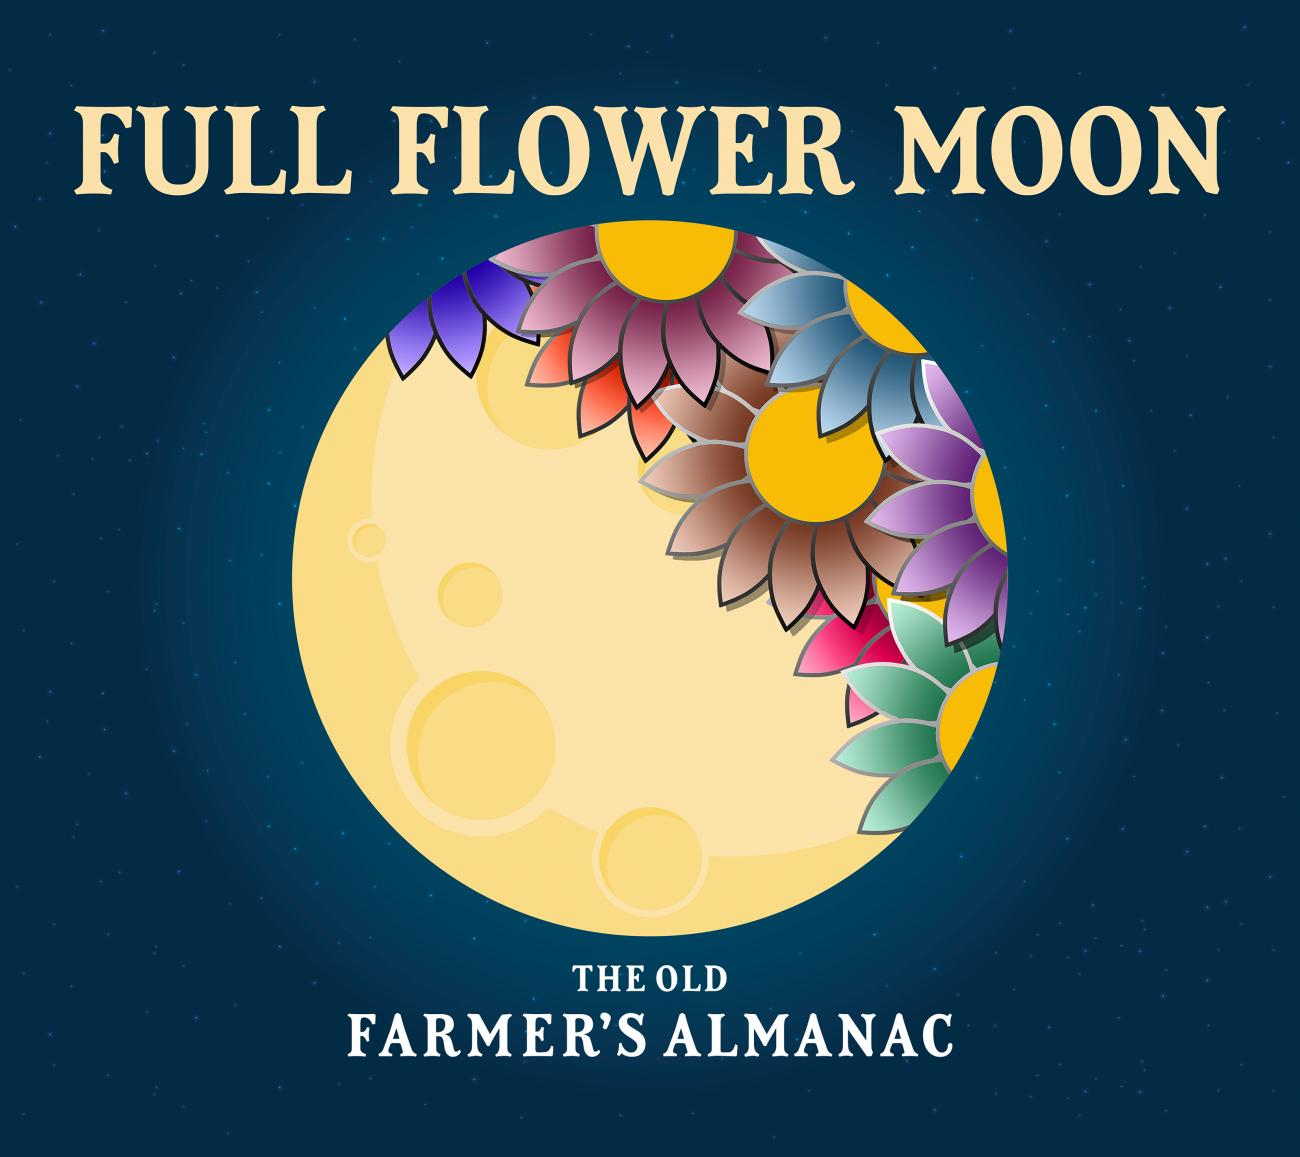 Flower Moon Image Five